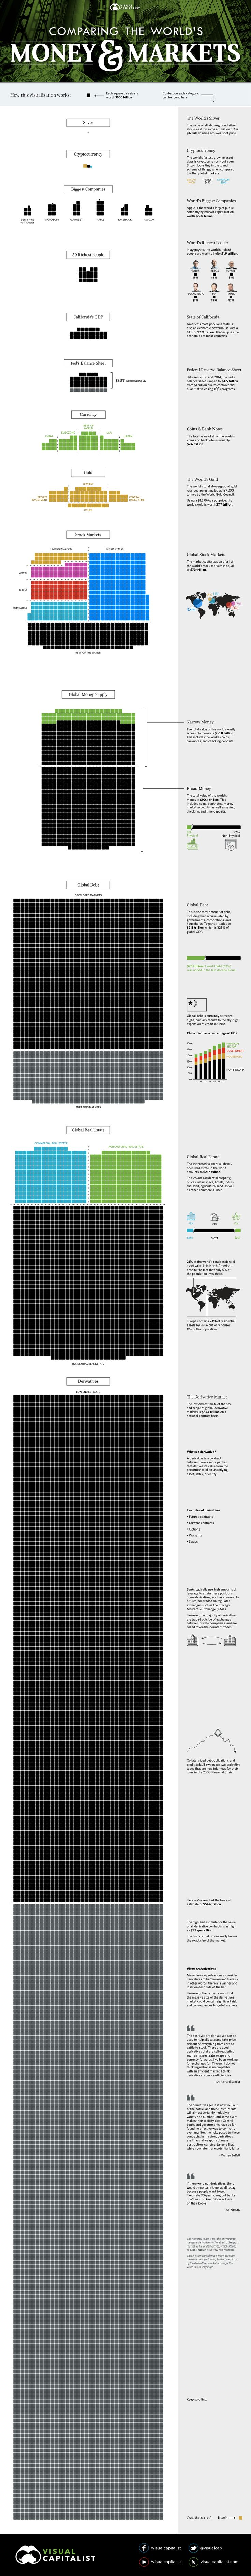 all-the-worlds-money-infographic.png (1070×10980)